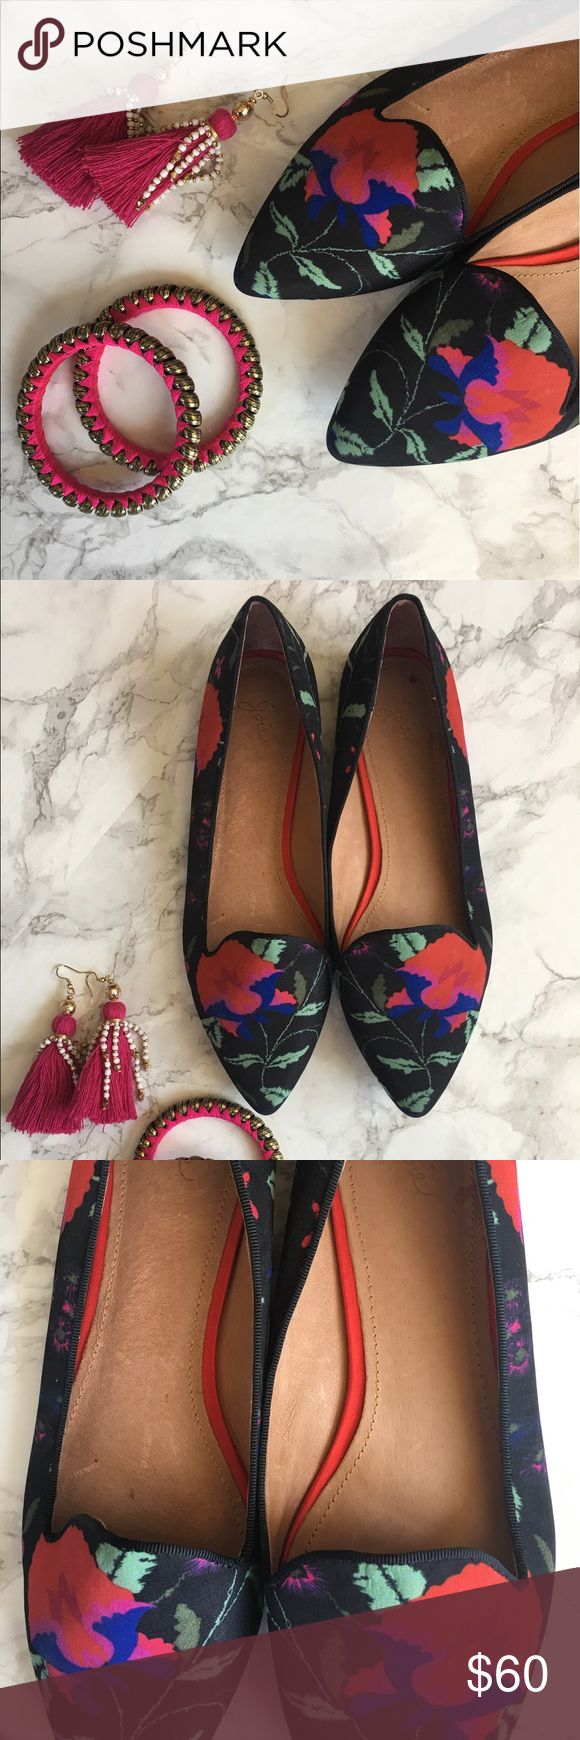 Joie floral print flats The perfect floral print flats so cute for summer. Can we worn with dress, shorts and pants. Very comfy gently used, great condition. Joie Shoes Flats & Loafers